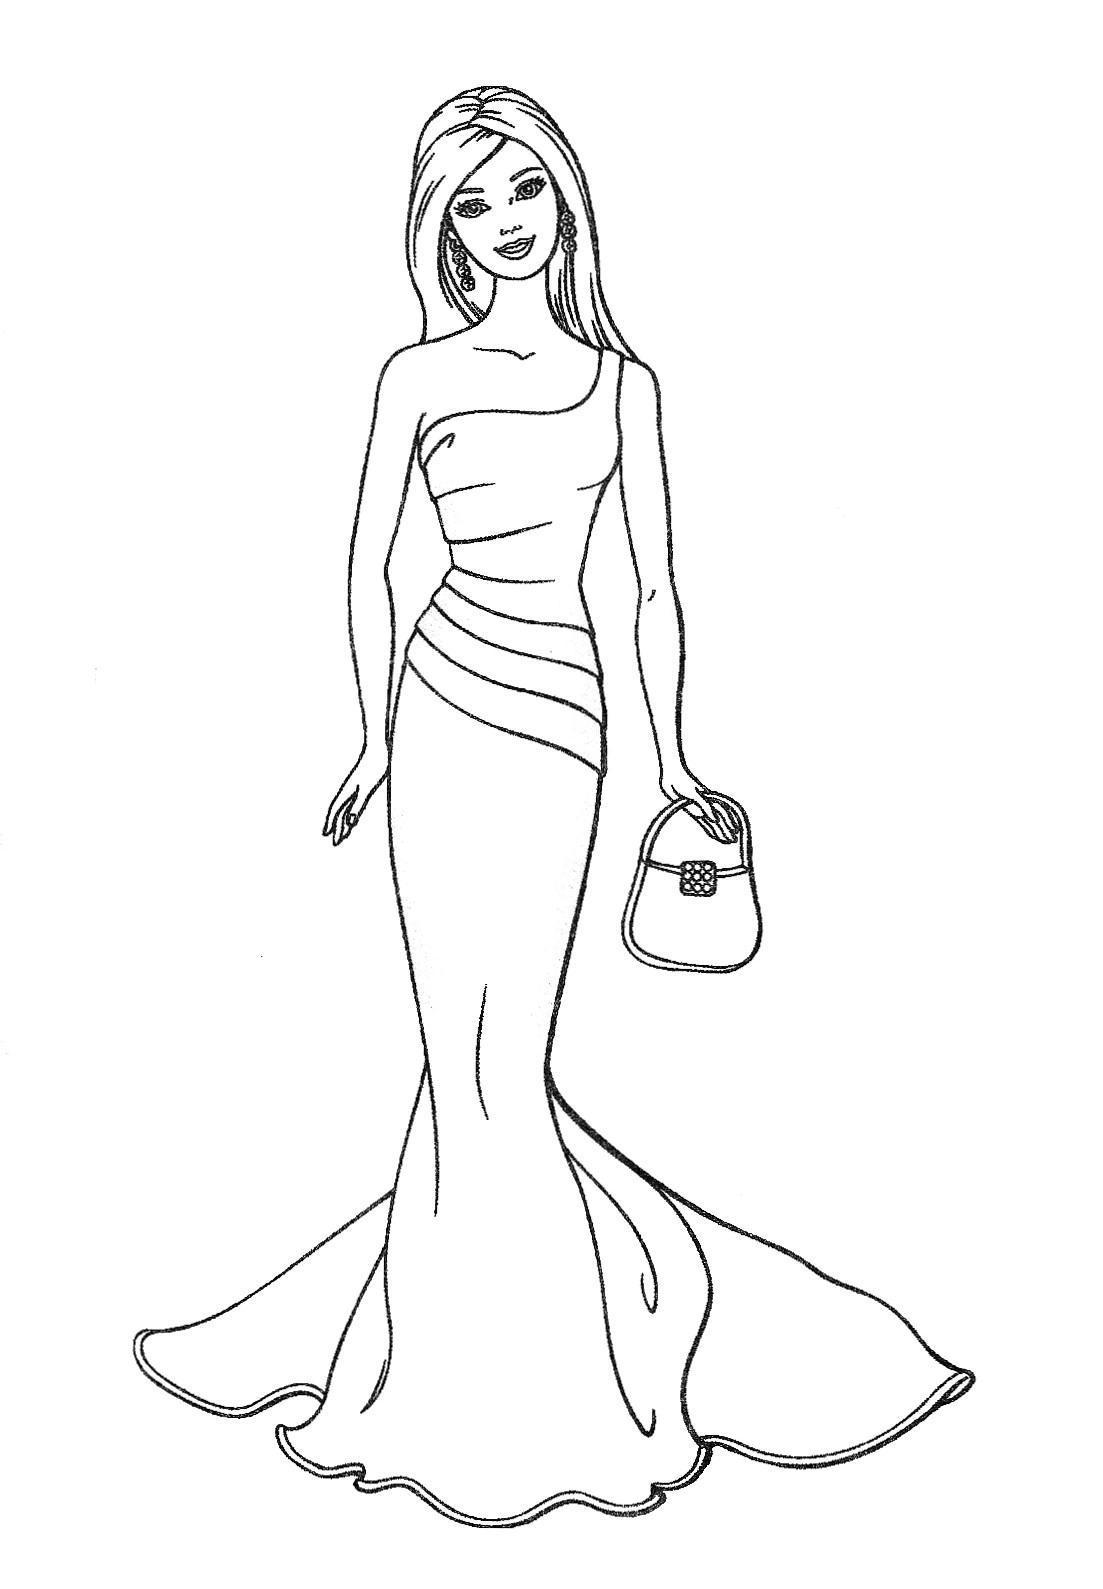 Coloring Pages Of Barbie Free Printable Barbie Coloring Pages For Kids